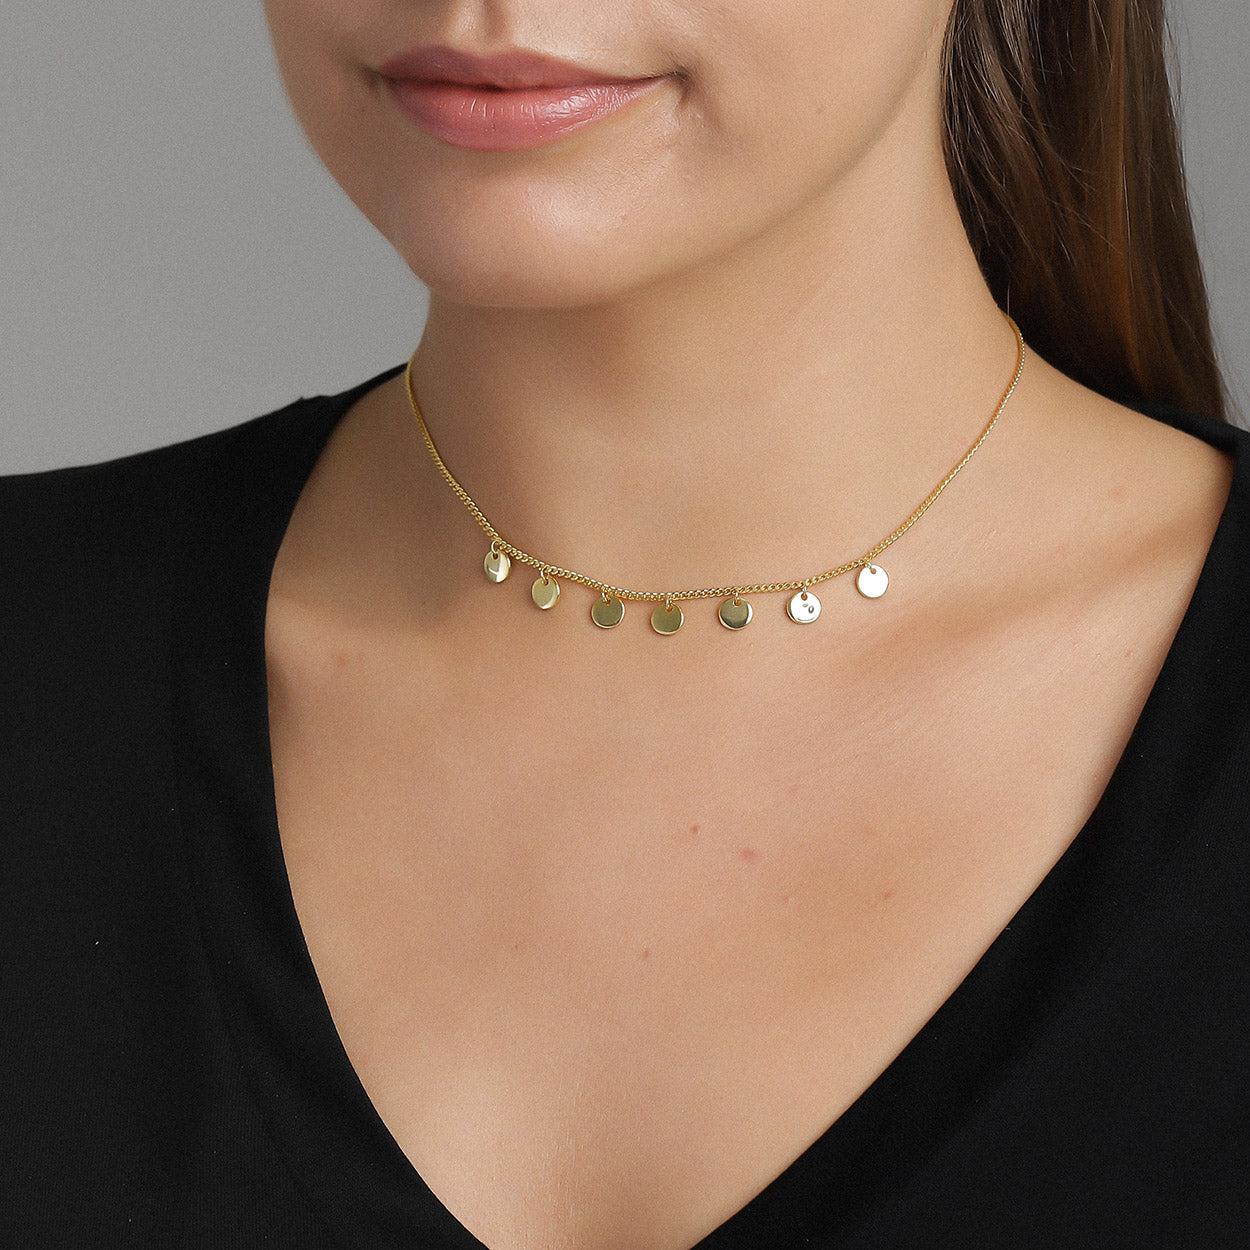 Plain Choker Necklace